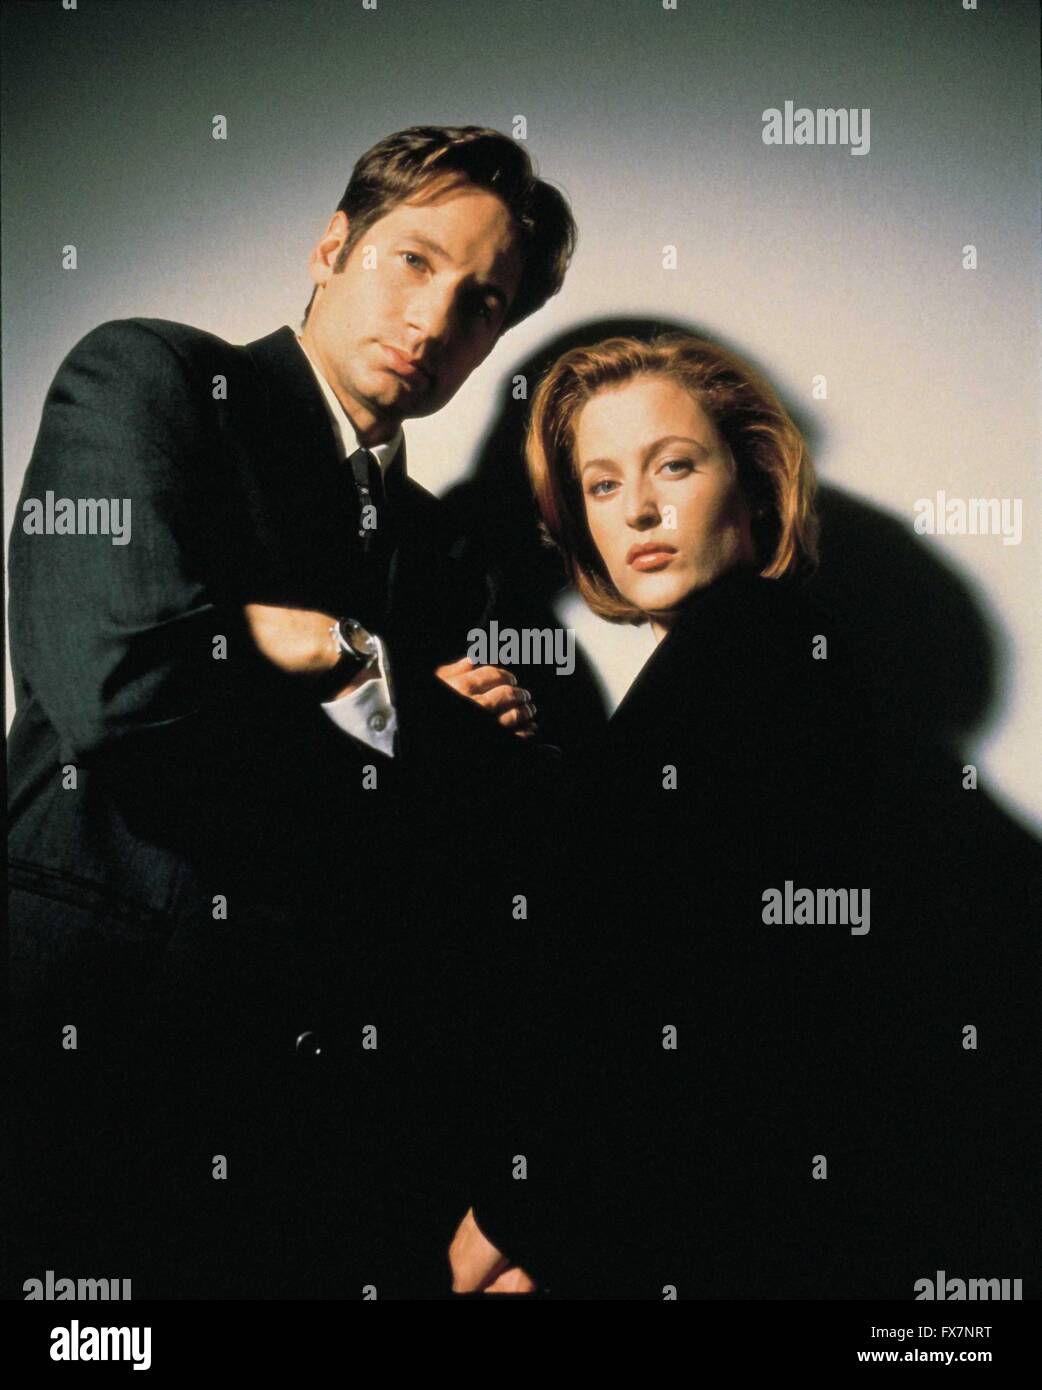 The X Files TV Series 1993 - 2002 USA 1997 Season 5 Created by Chris Carter David Duchovny , Gillian Anderson - Stock Image